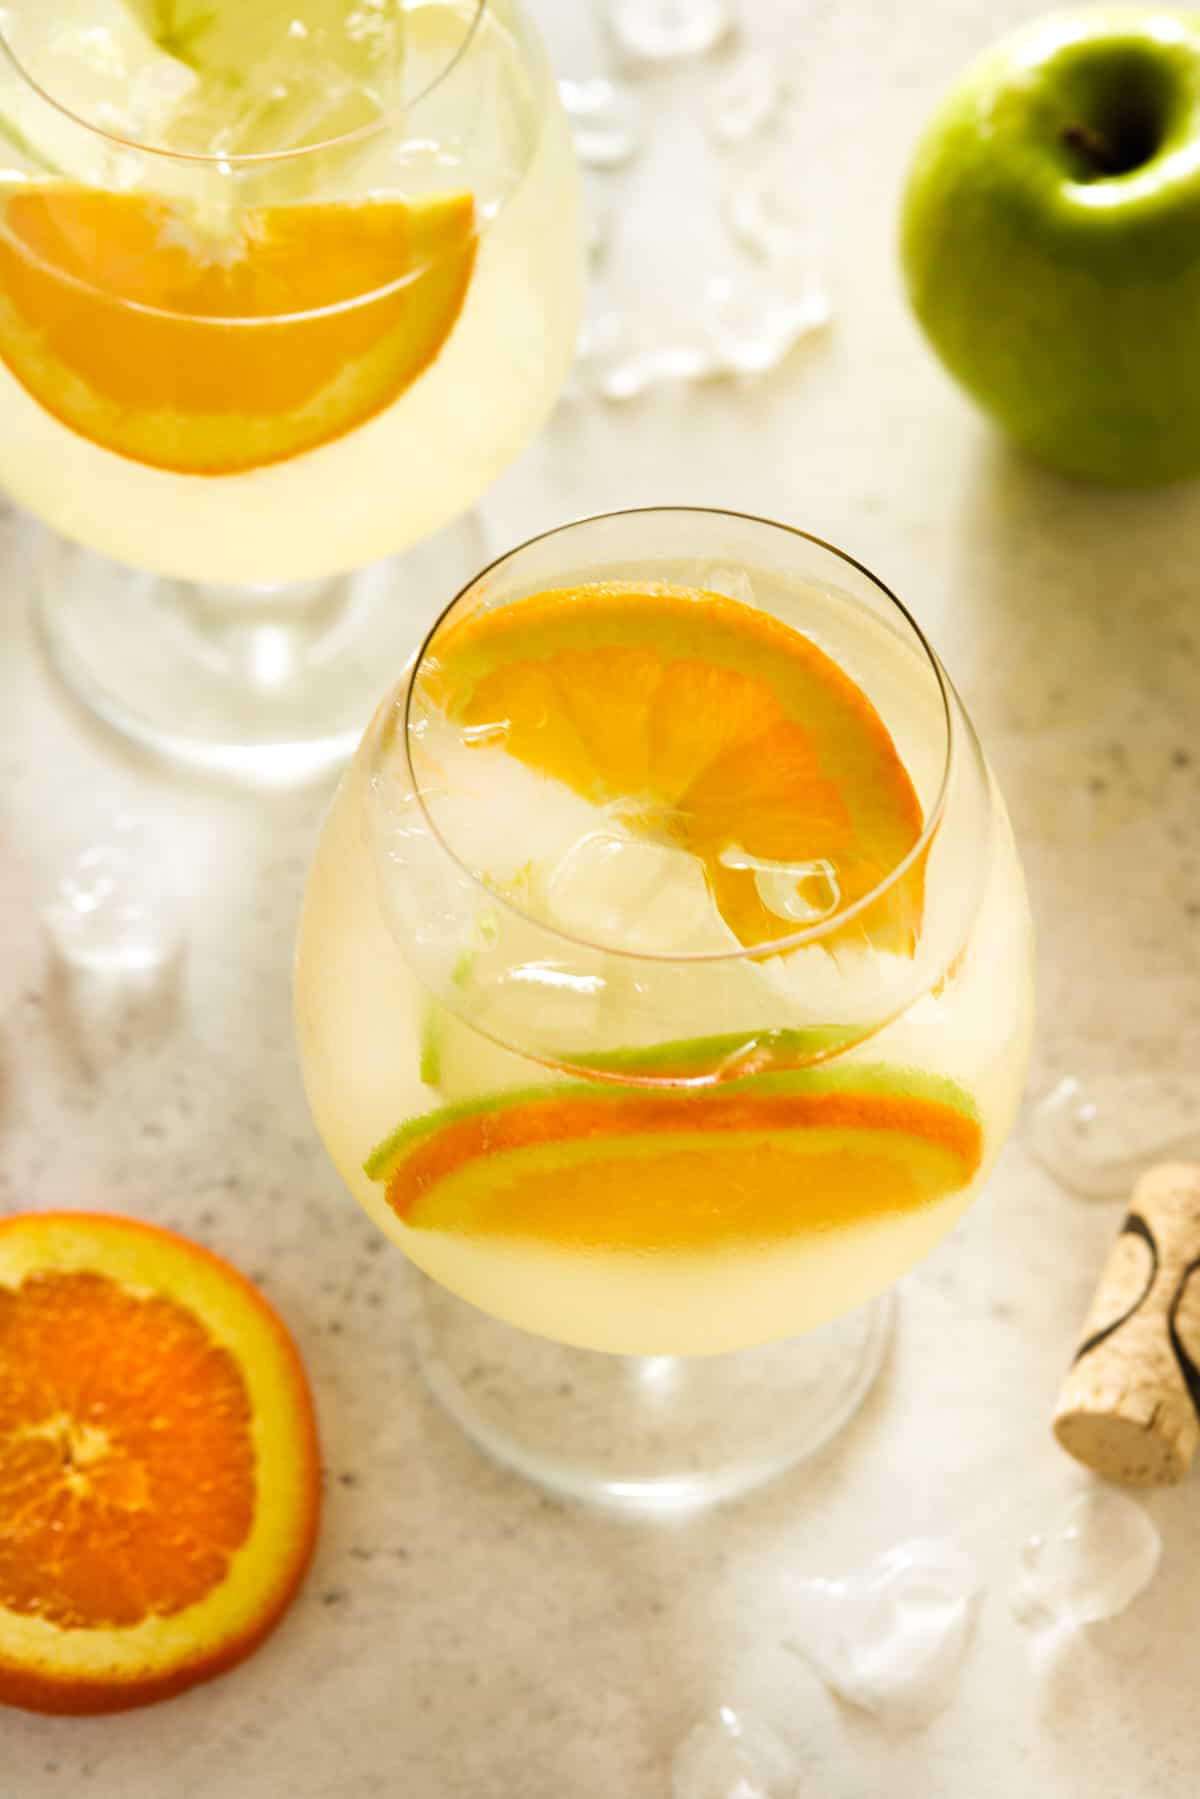 large glasses filled with lemonade and fresh orange and apple slices.